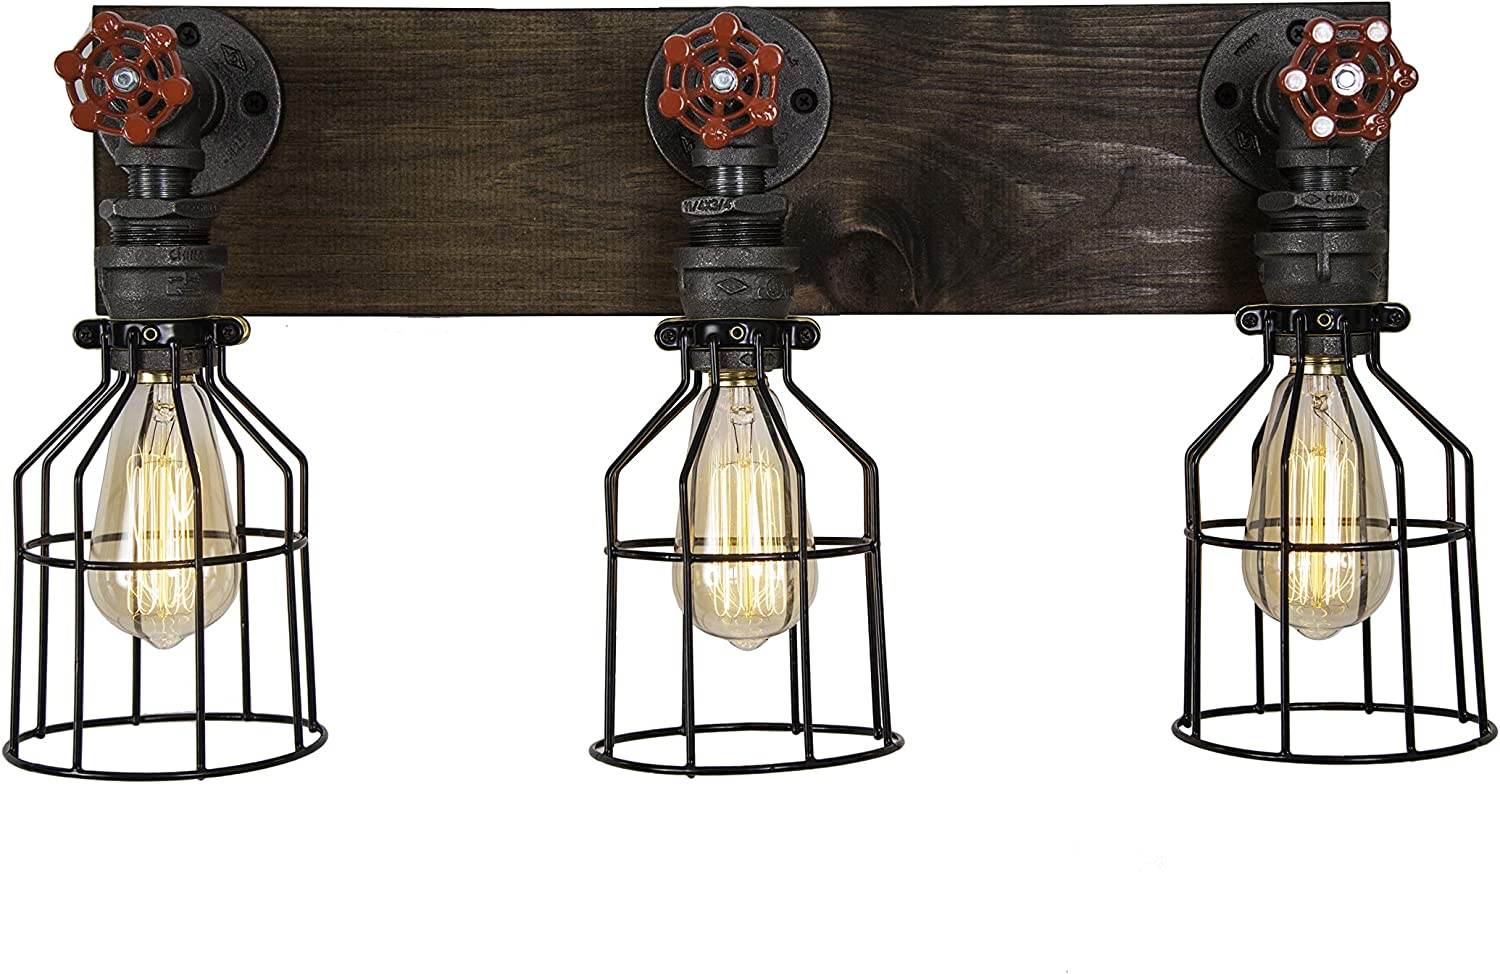 West Ninth Vintage Wood and Steel Vanity Light with Three Sockets and Red Spigot Handles – Industrial and Rustic – Perfect for Farmhouse Bathroom